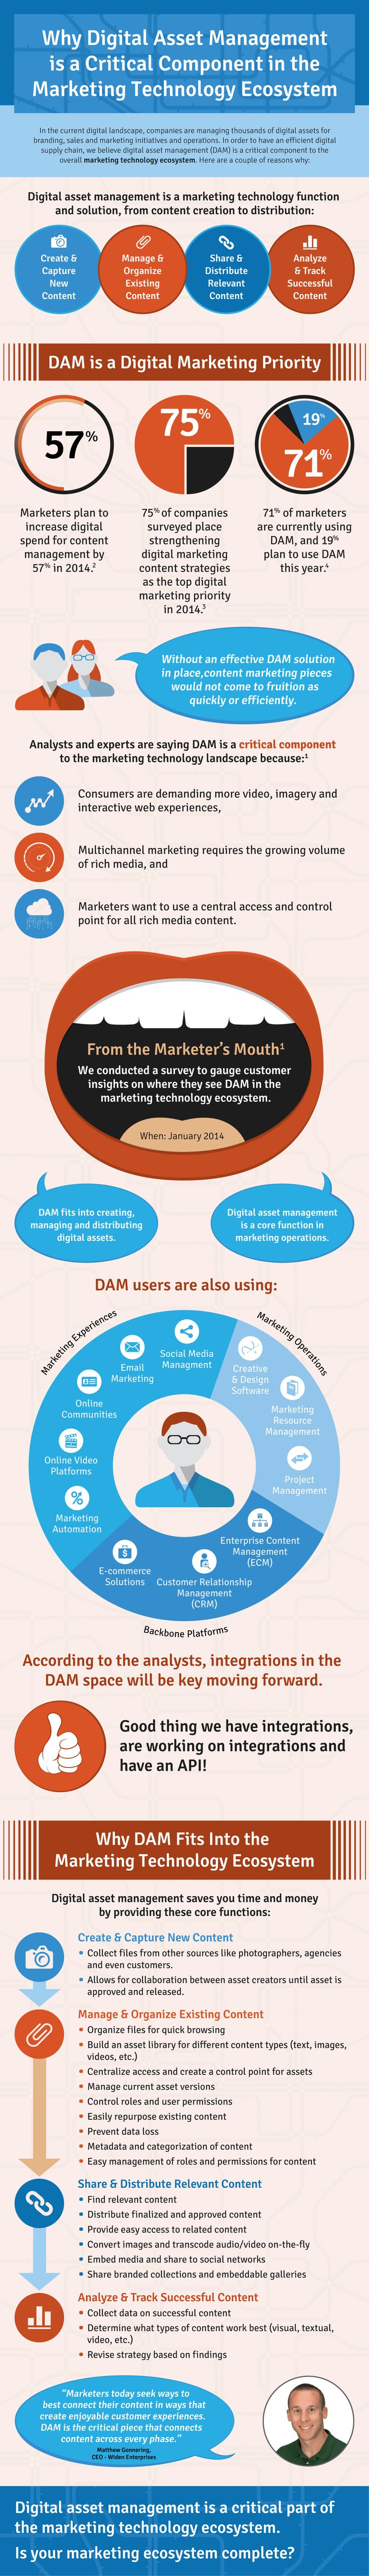 Why Digital Asset Management is a Critical Component in the Marketing Technology Ecosystem